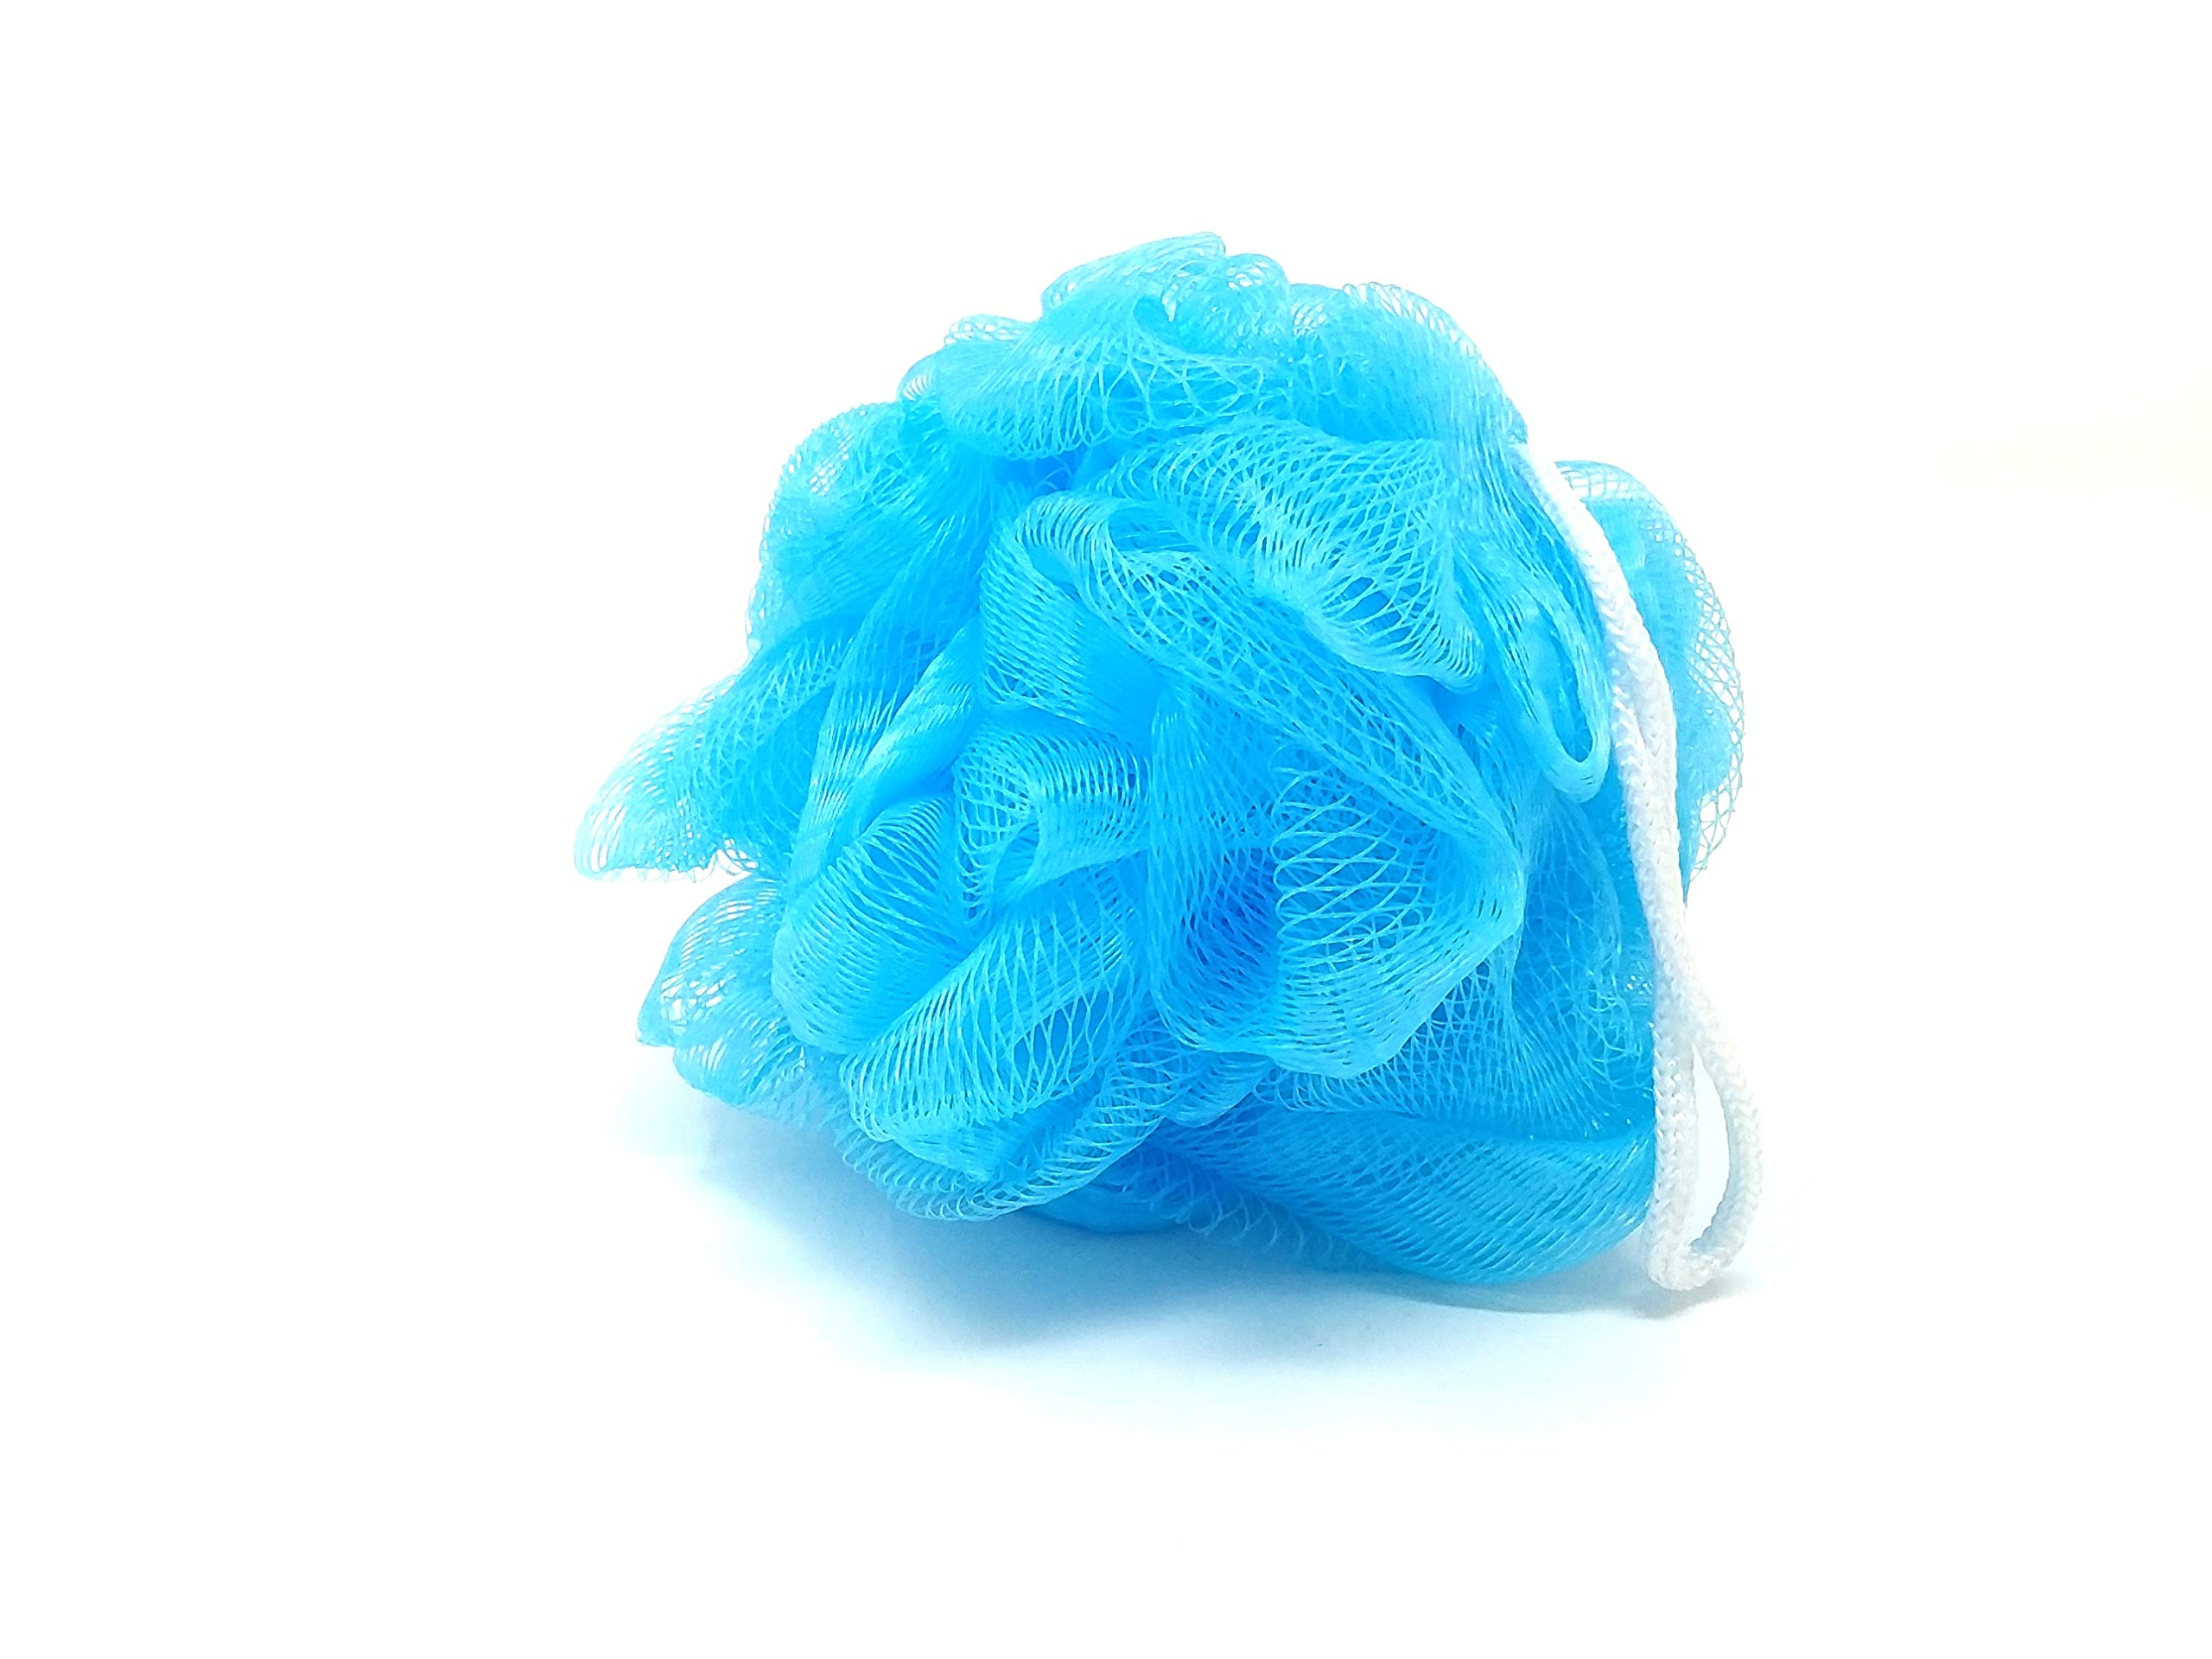 20 Bath or Shower Sponge Loofahs Pouf Large 4 inch Mesh Assorted Colors WHOLESALE BULK LOT by Chachlili (Image #2)